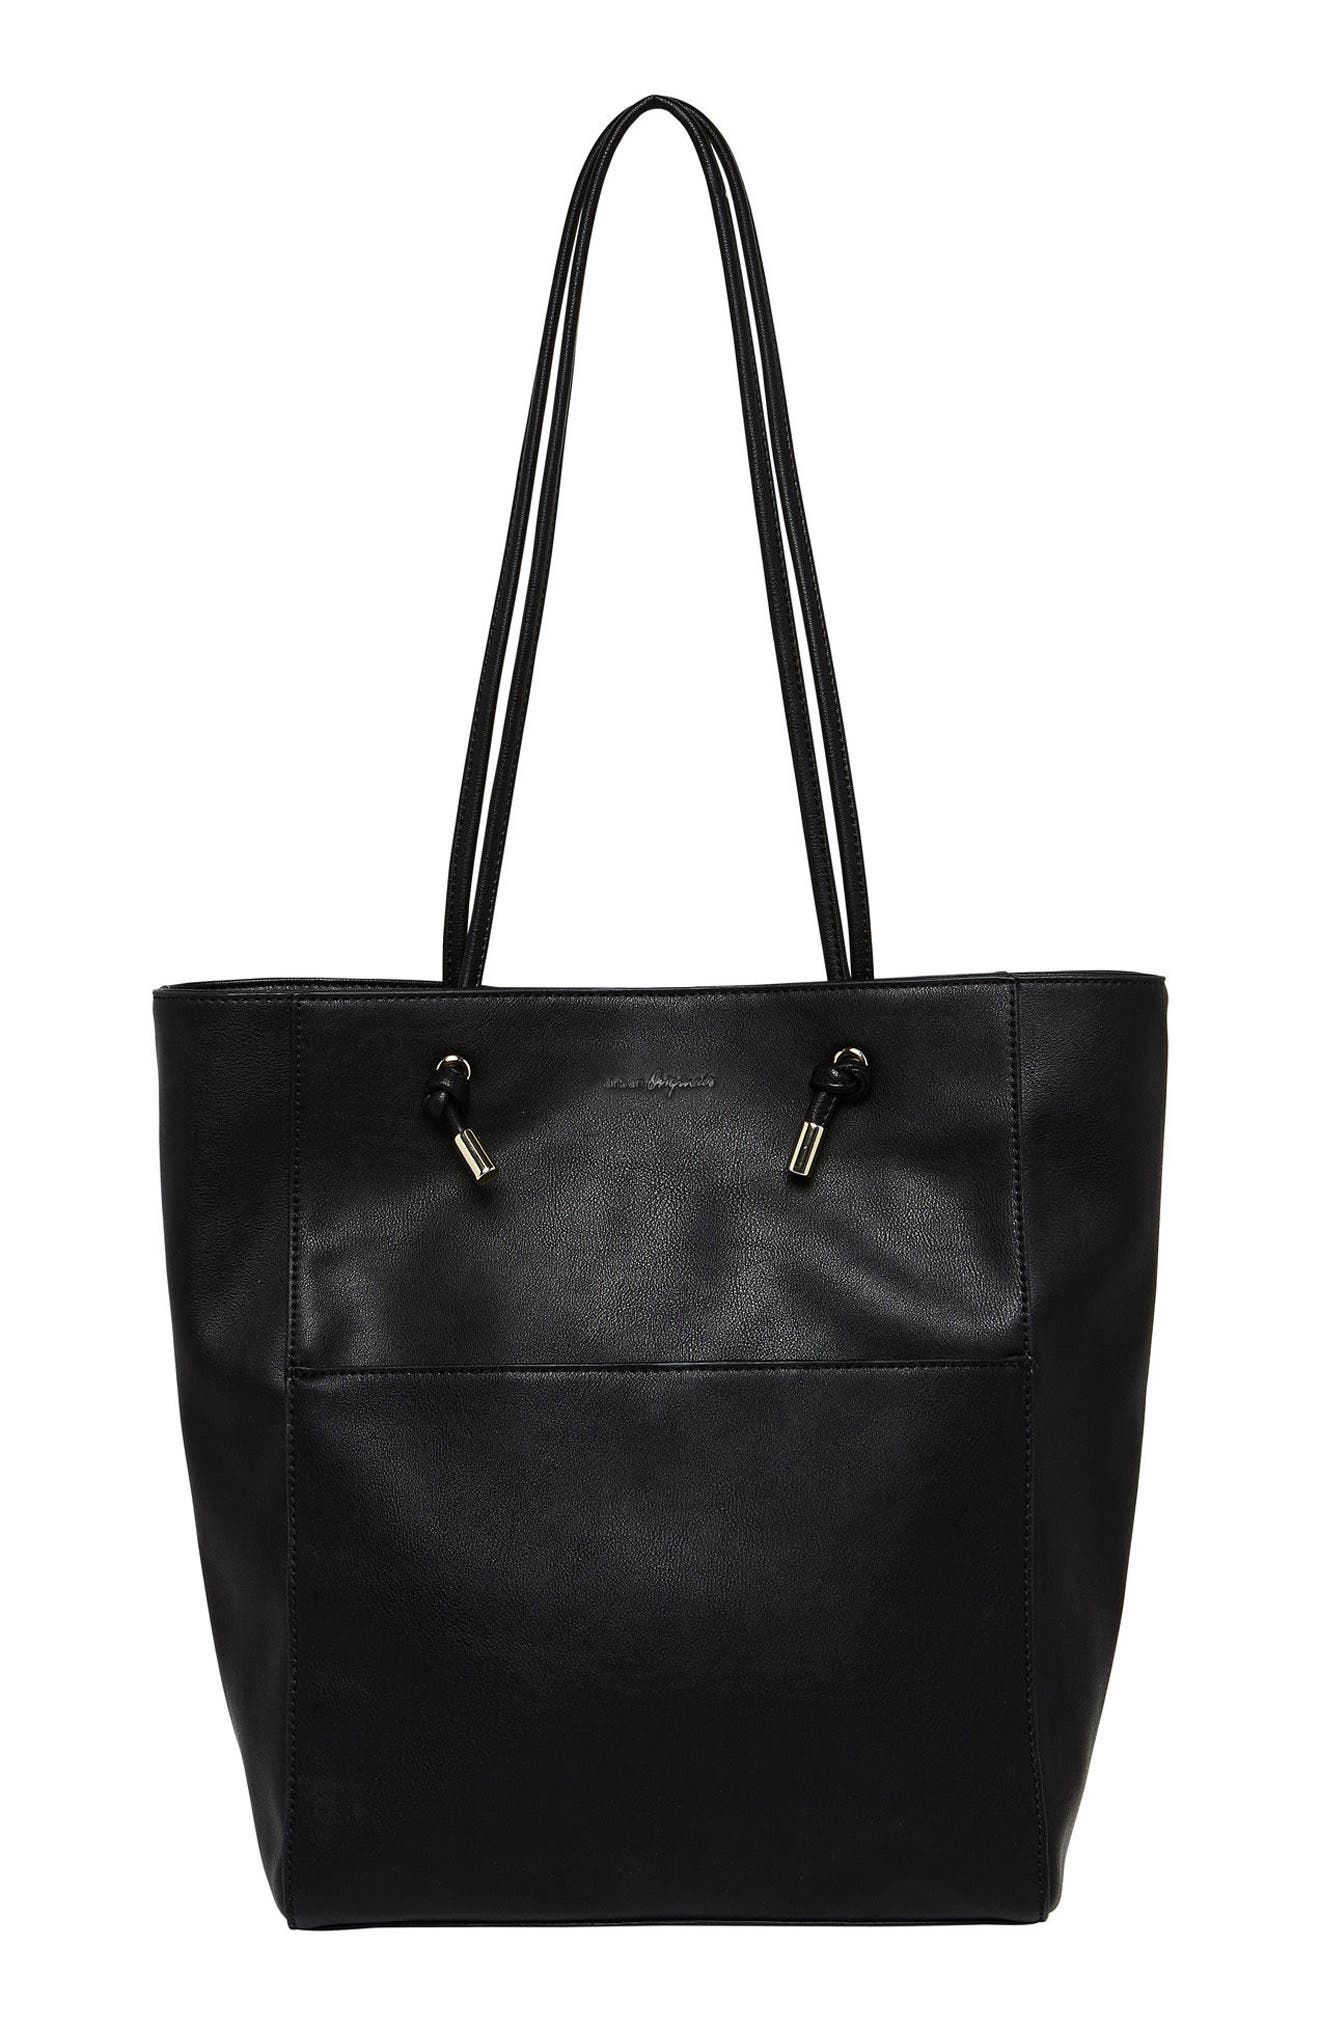 Gods & Goddesses Vegan Leather Tote by Urban Originals